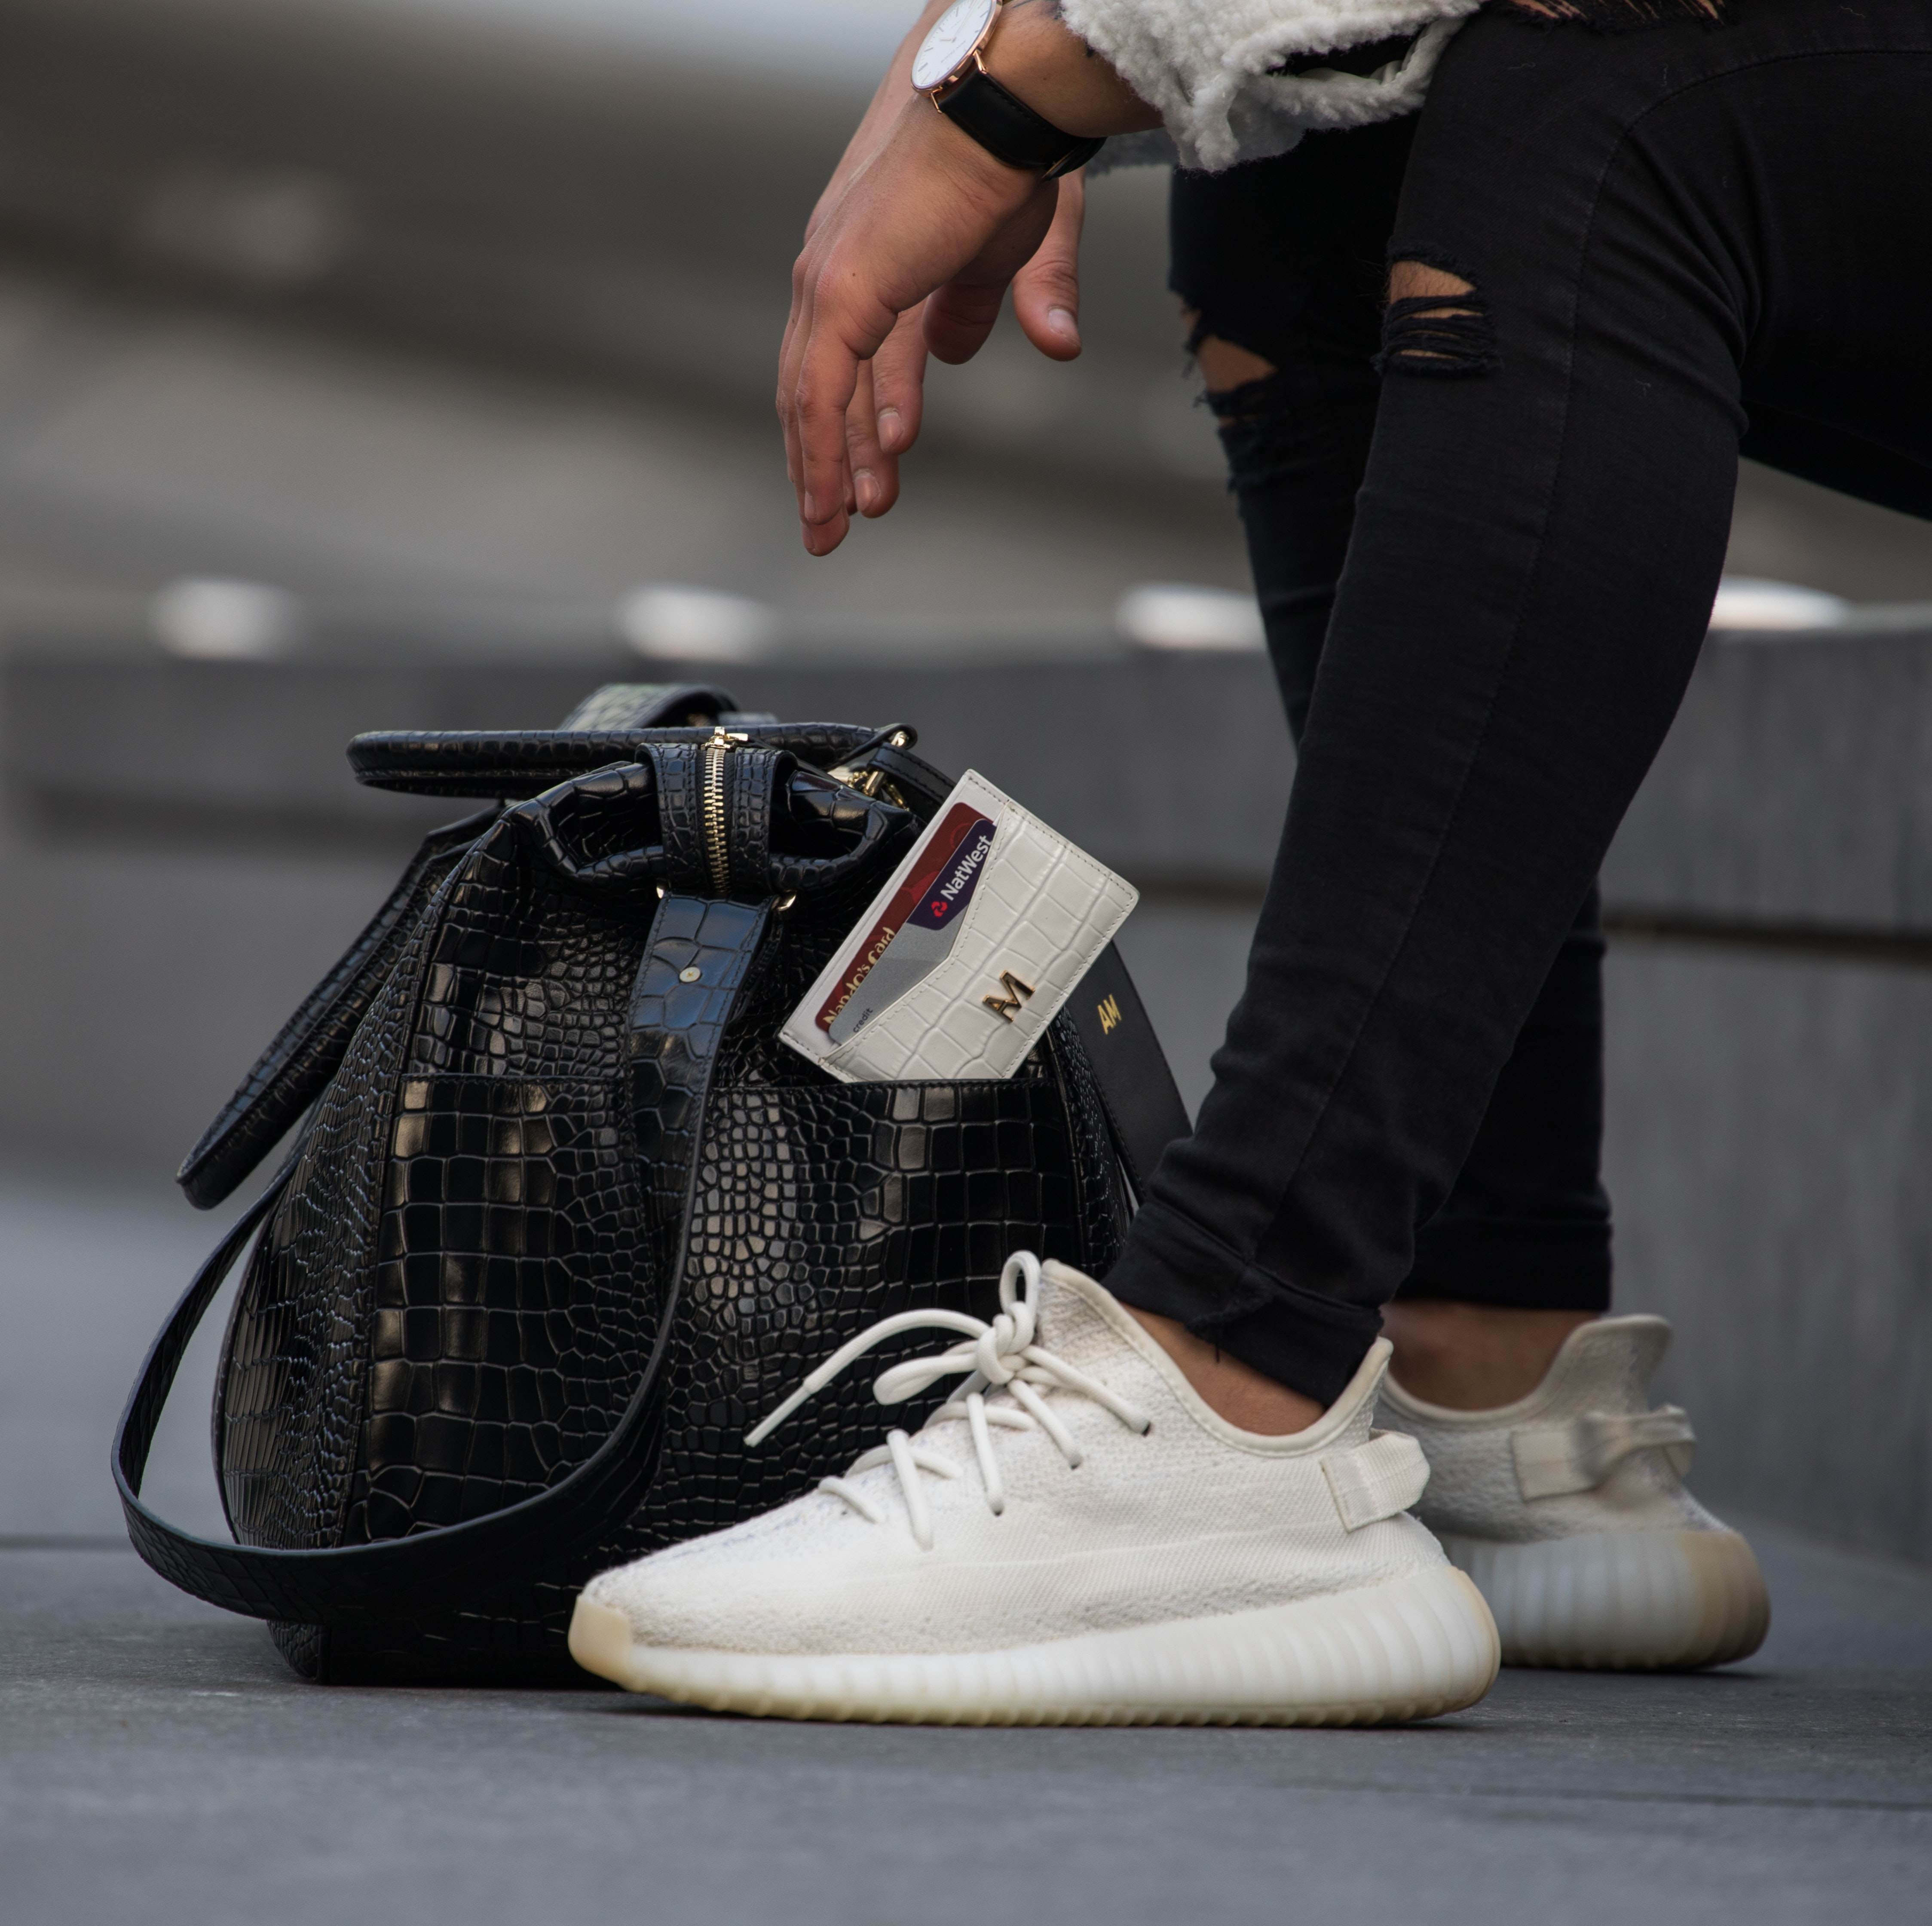 pair of black-and-white Adidas sneakers